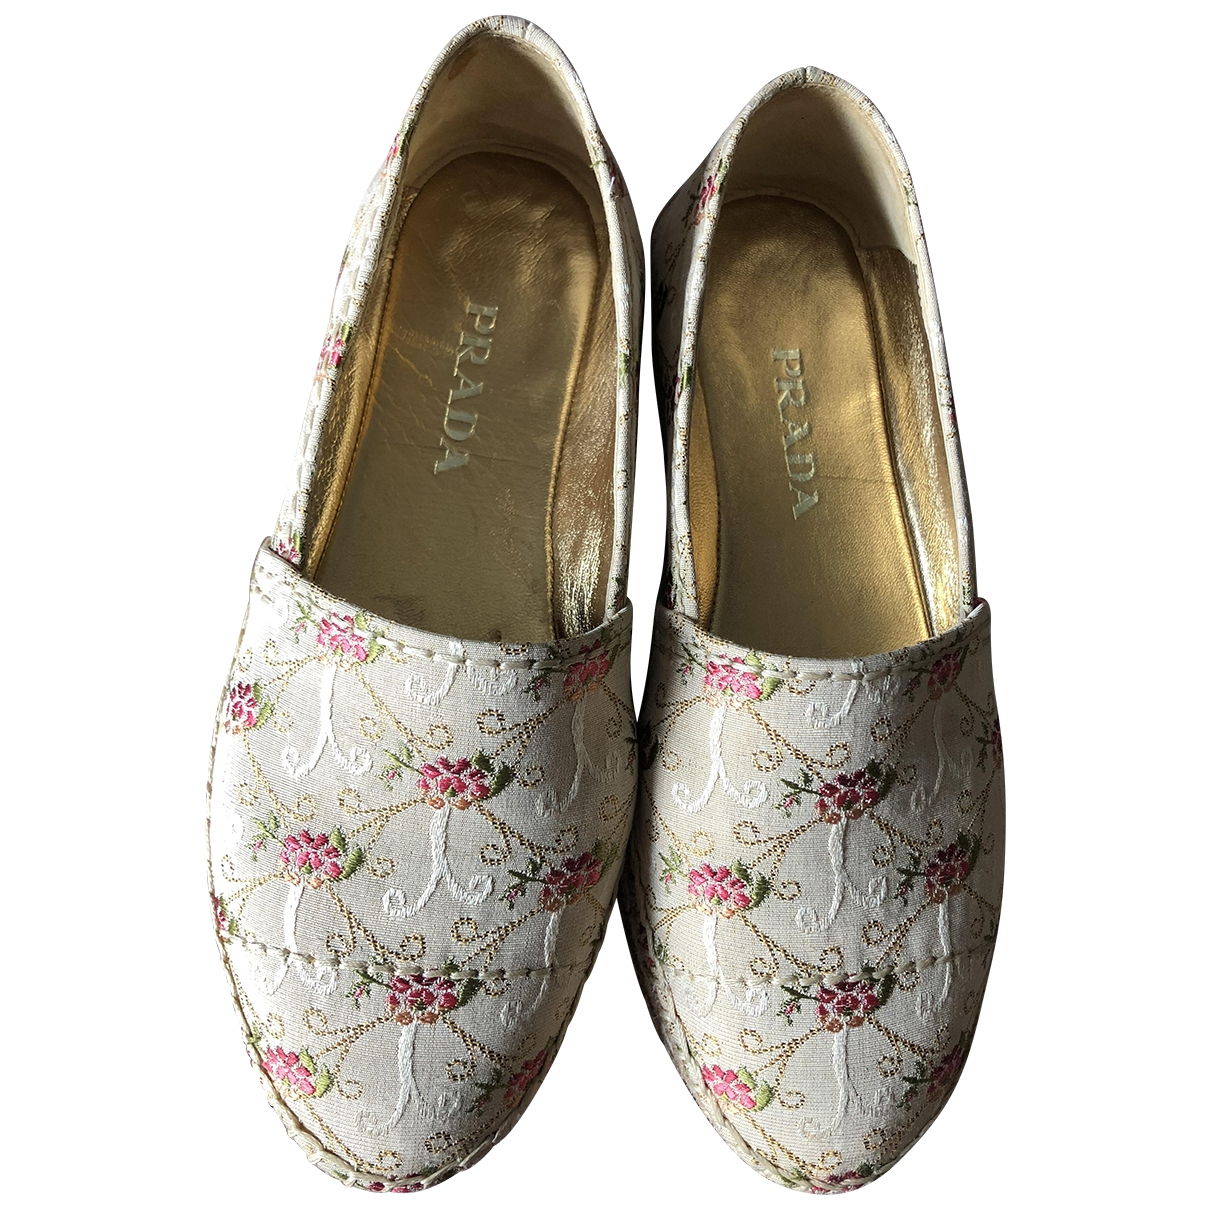 Prada \N Beige Cloth Espadrilles for Women 36.5 EU